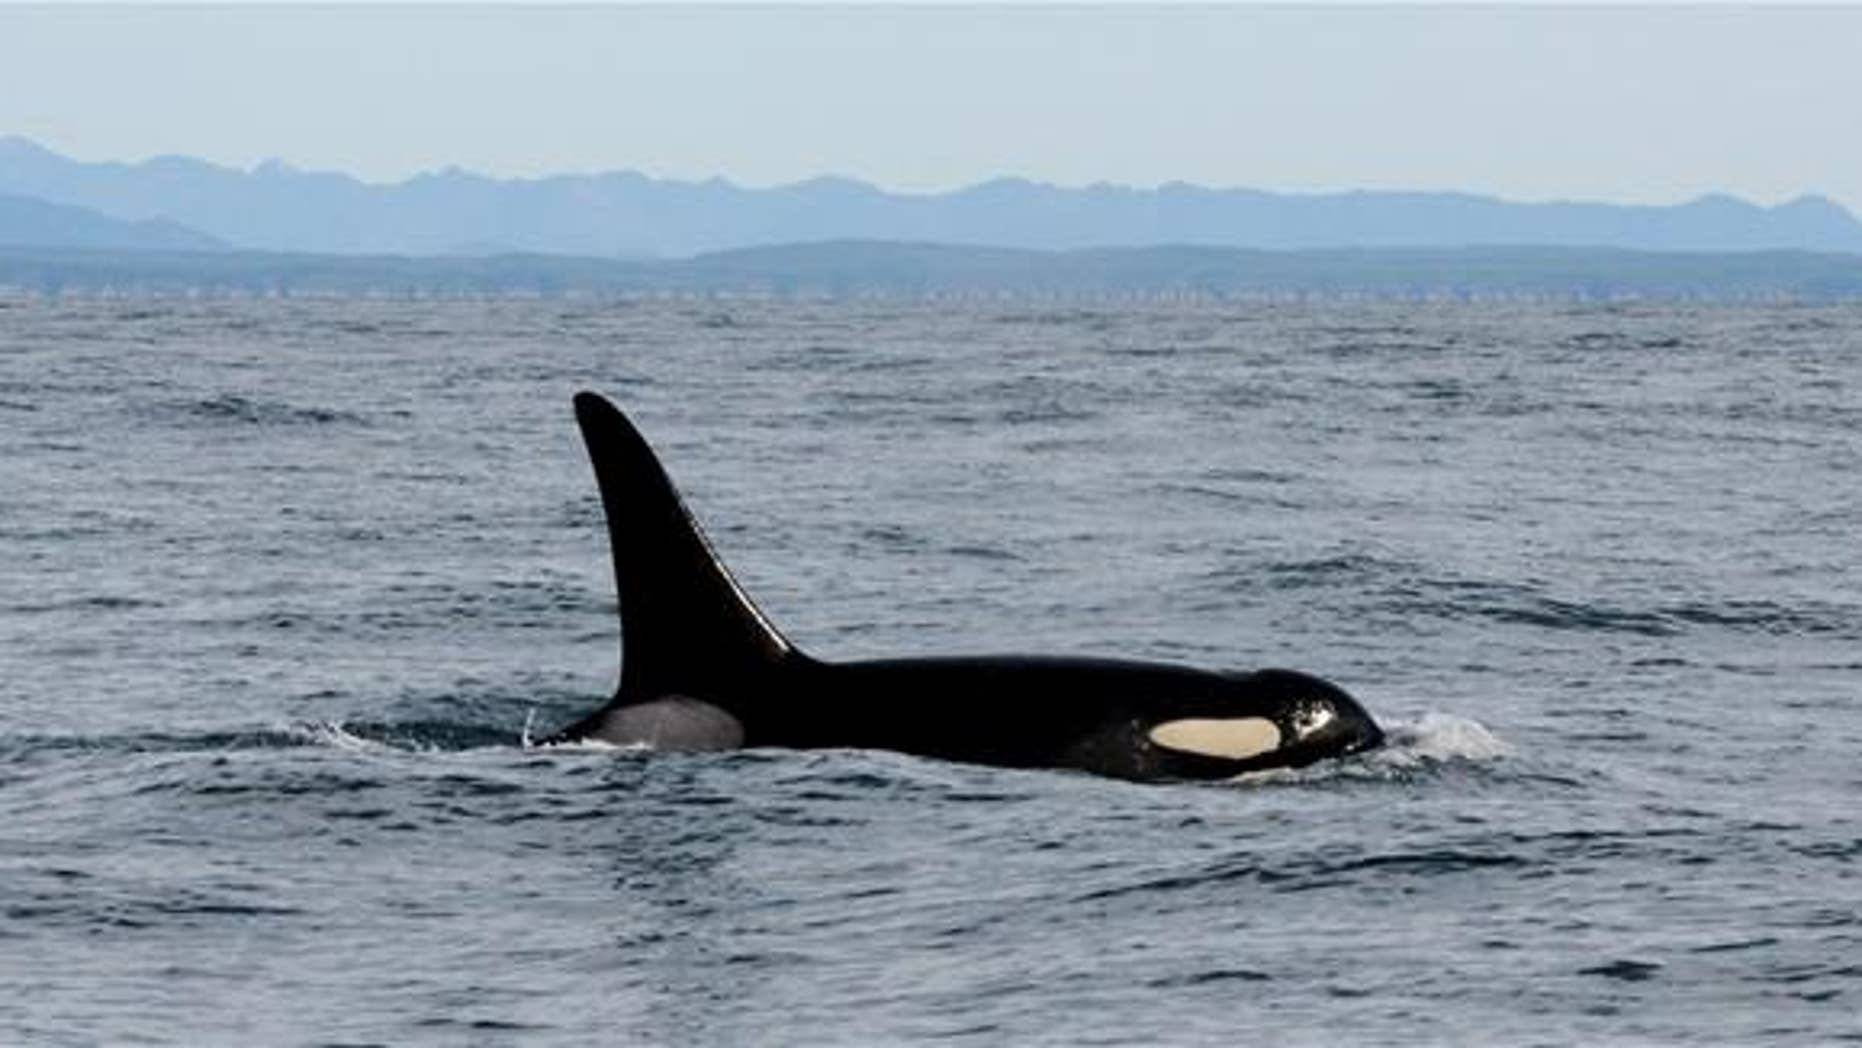 An orca whale swims in the Pacific Ocean near La Push, Wash.